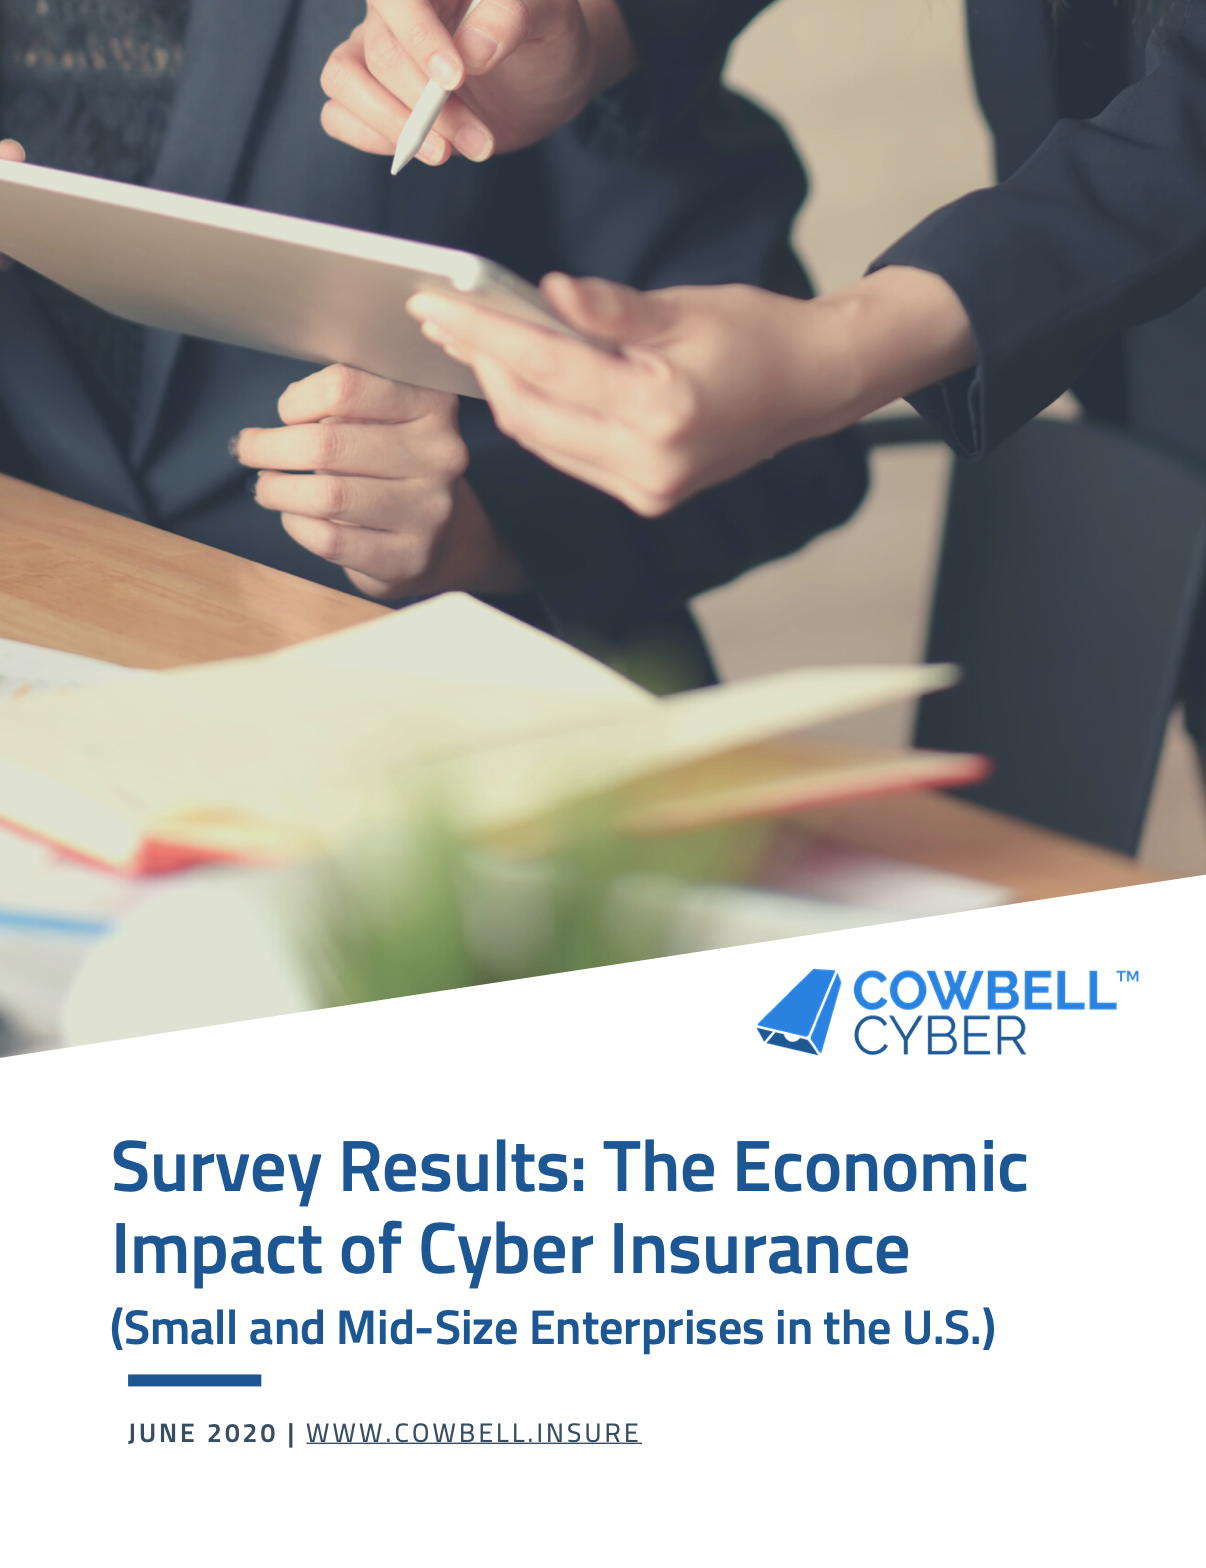 Cowbell Cyber Economic Impact of Cyber Insurance